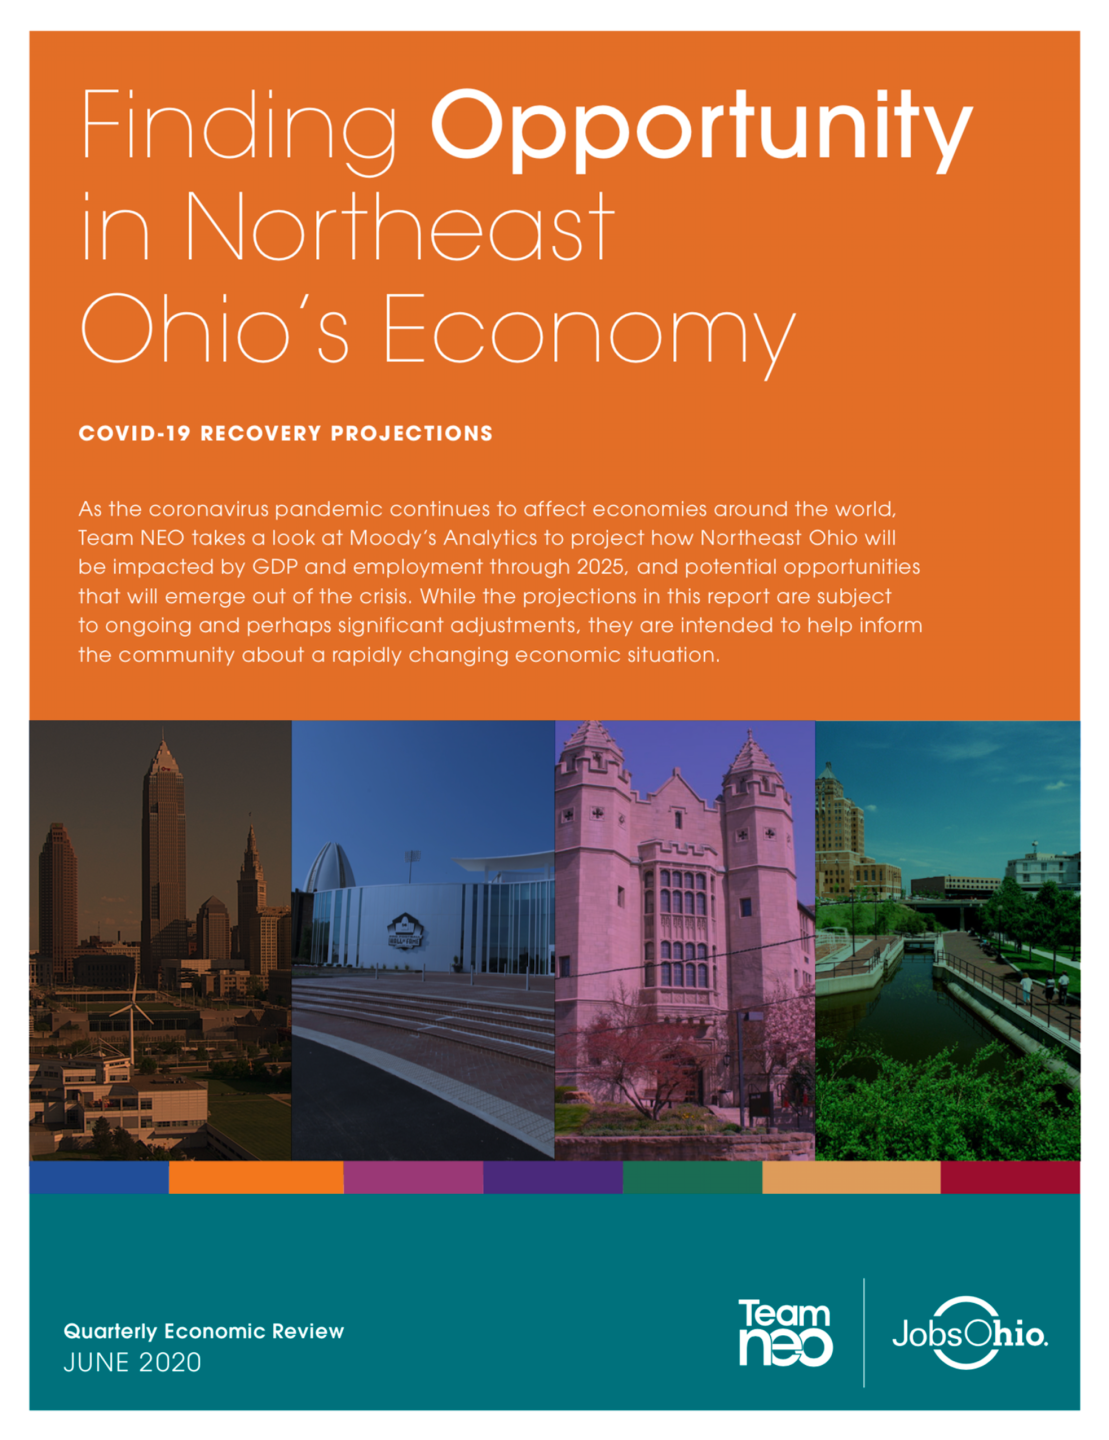 New reports shows economic recovery from COVID-19 will take years in Northeast Ohio